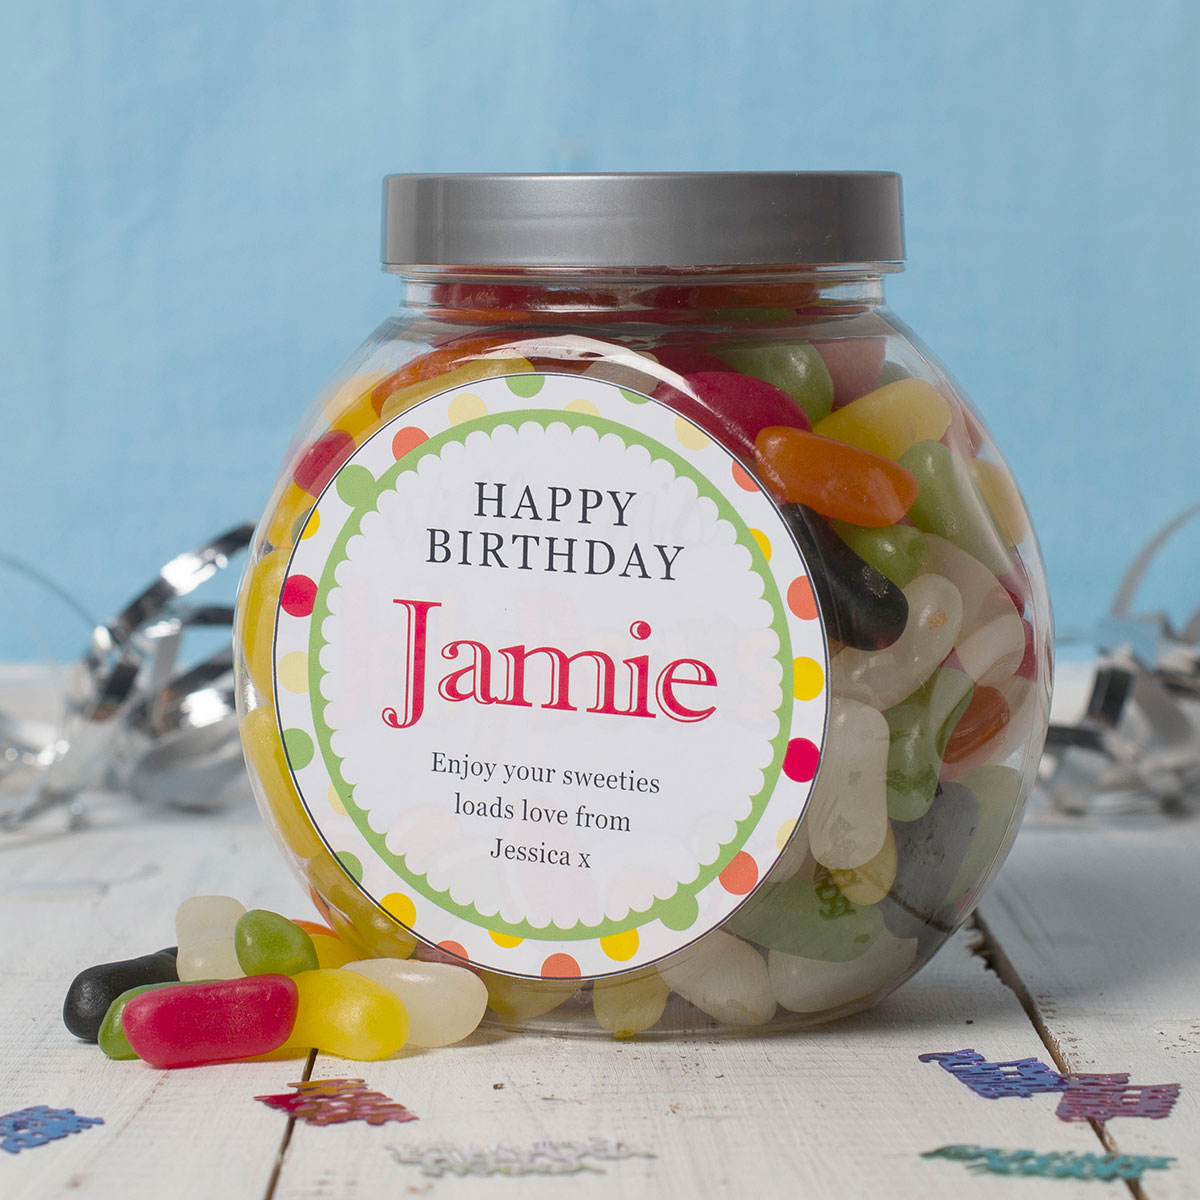 Bargain Personalised Jelly Beans Jar - Happy Birthday Spots Stockists